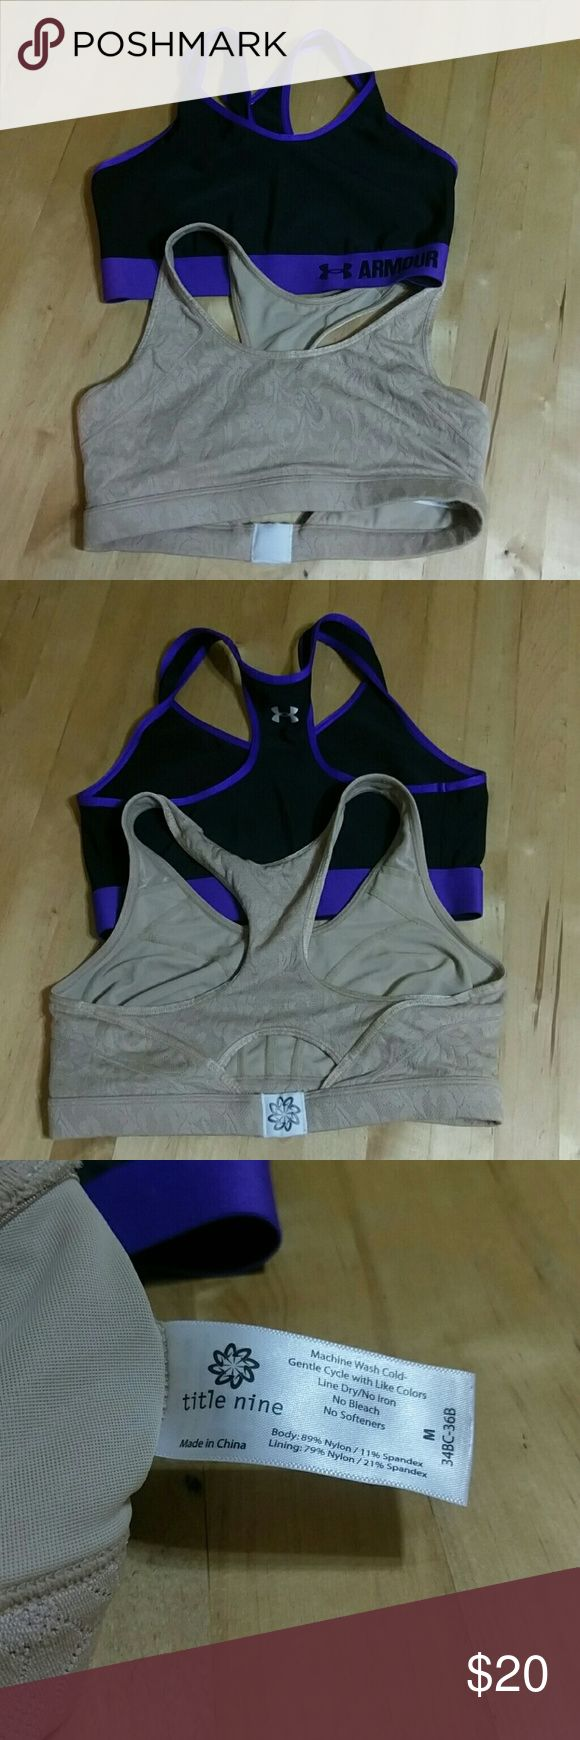 Bundle of Sports Bras One like new Under Armour black and purple sports bra size M with tags cuts off. One used Title Nine nude lace patterned size M 34BC-36B. Under Armour Intimates & Sleepwear Bras